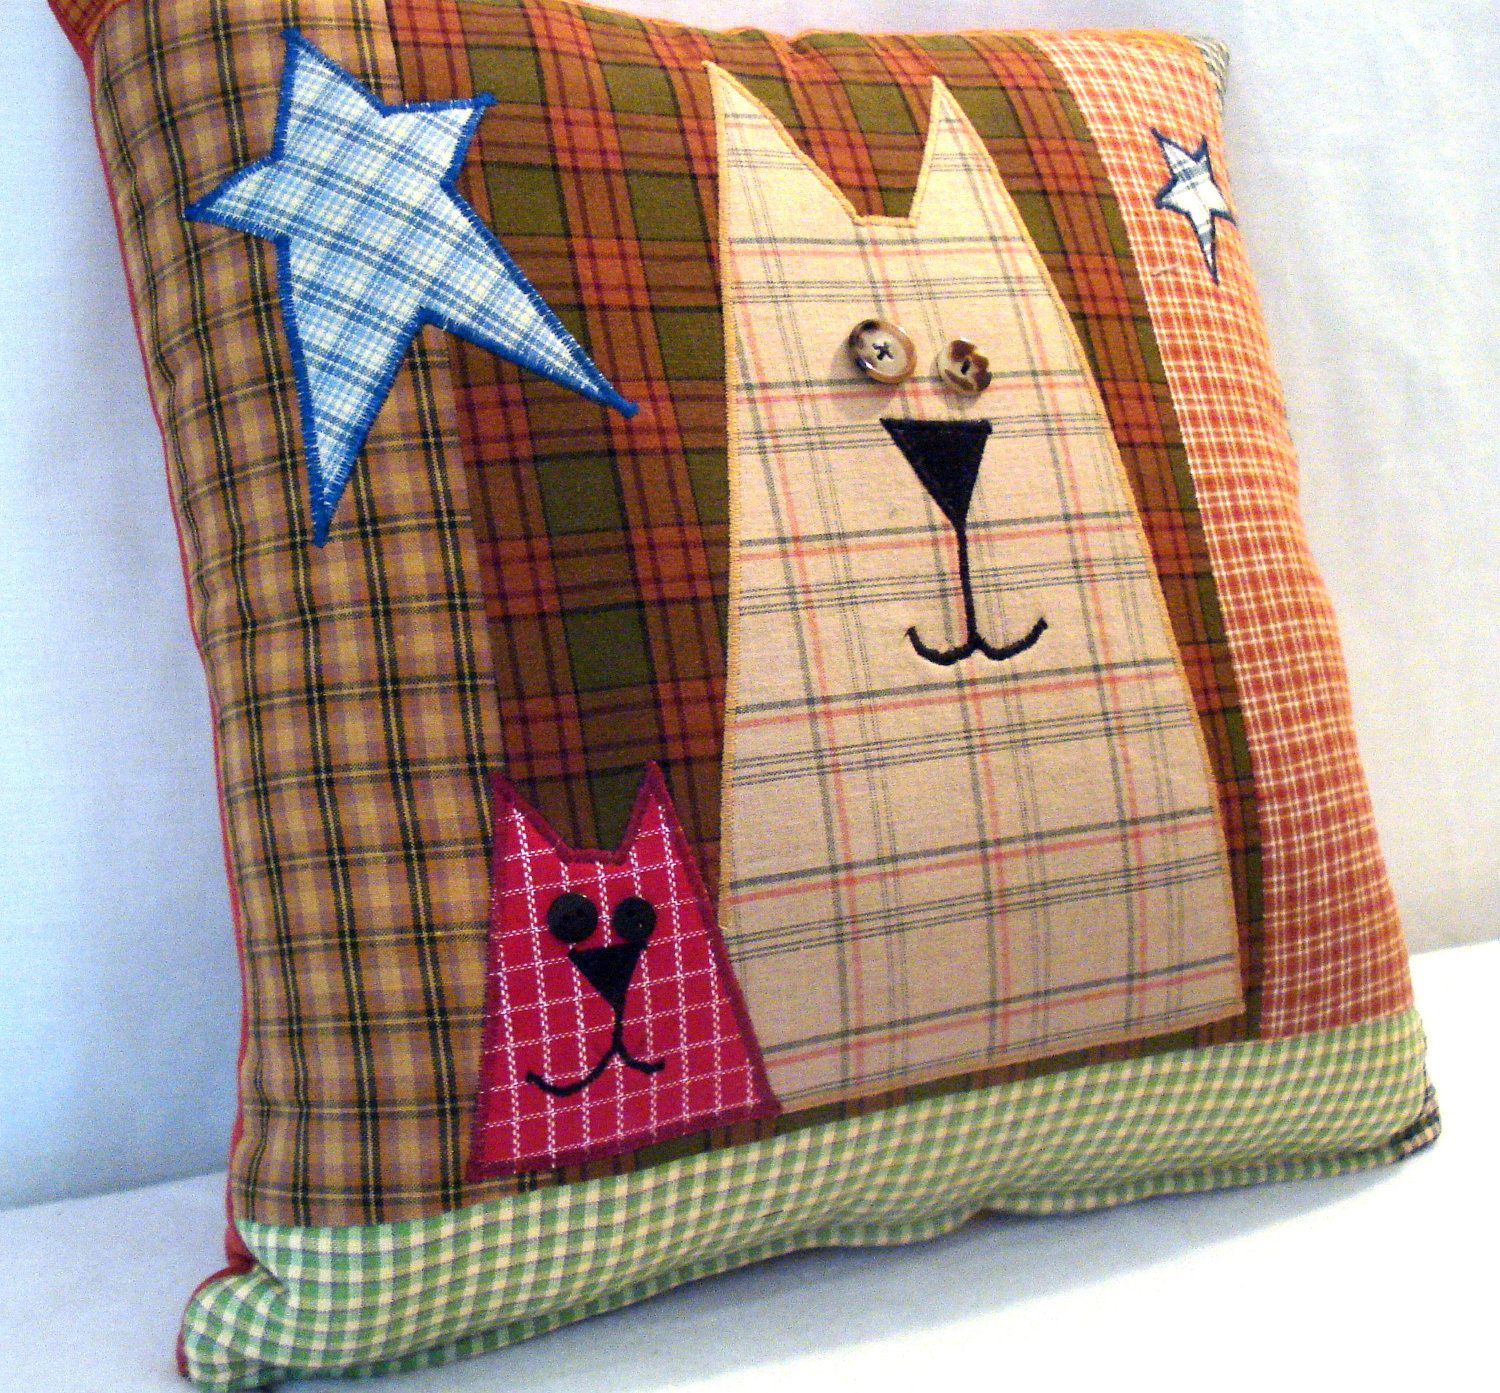 Folk art cat pillow cover Kitties Pinterest